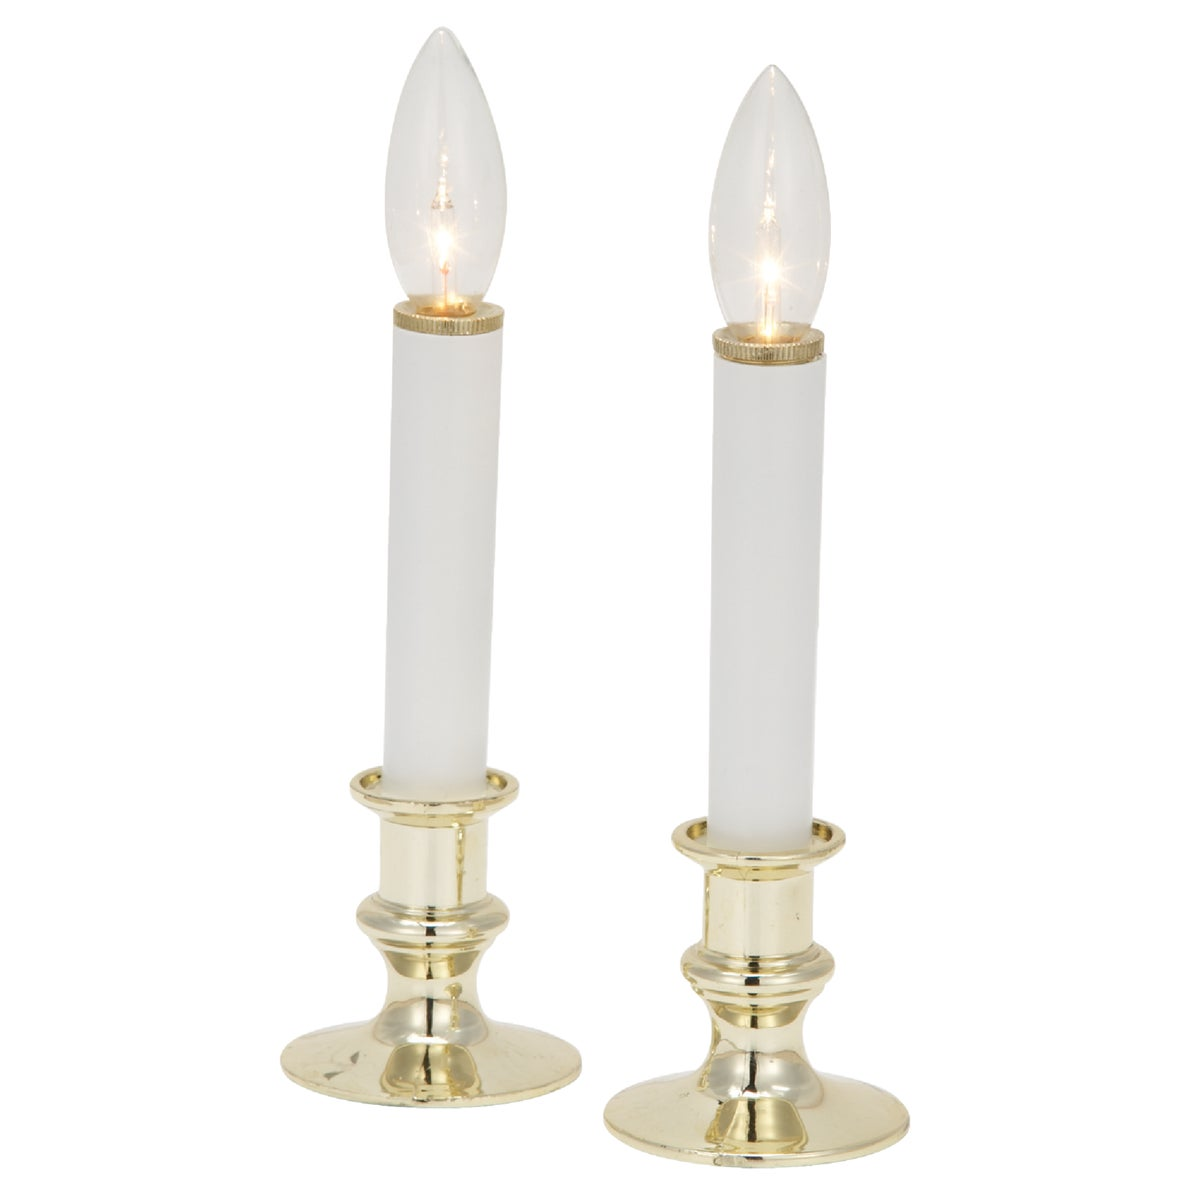 2PK BATTERY CANDLE